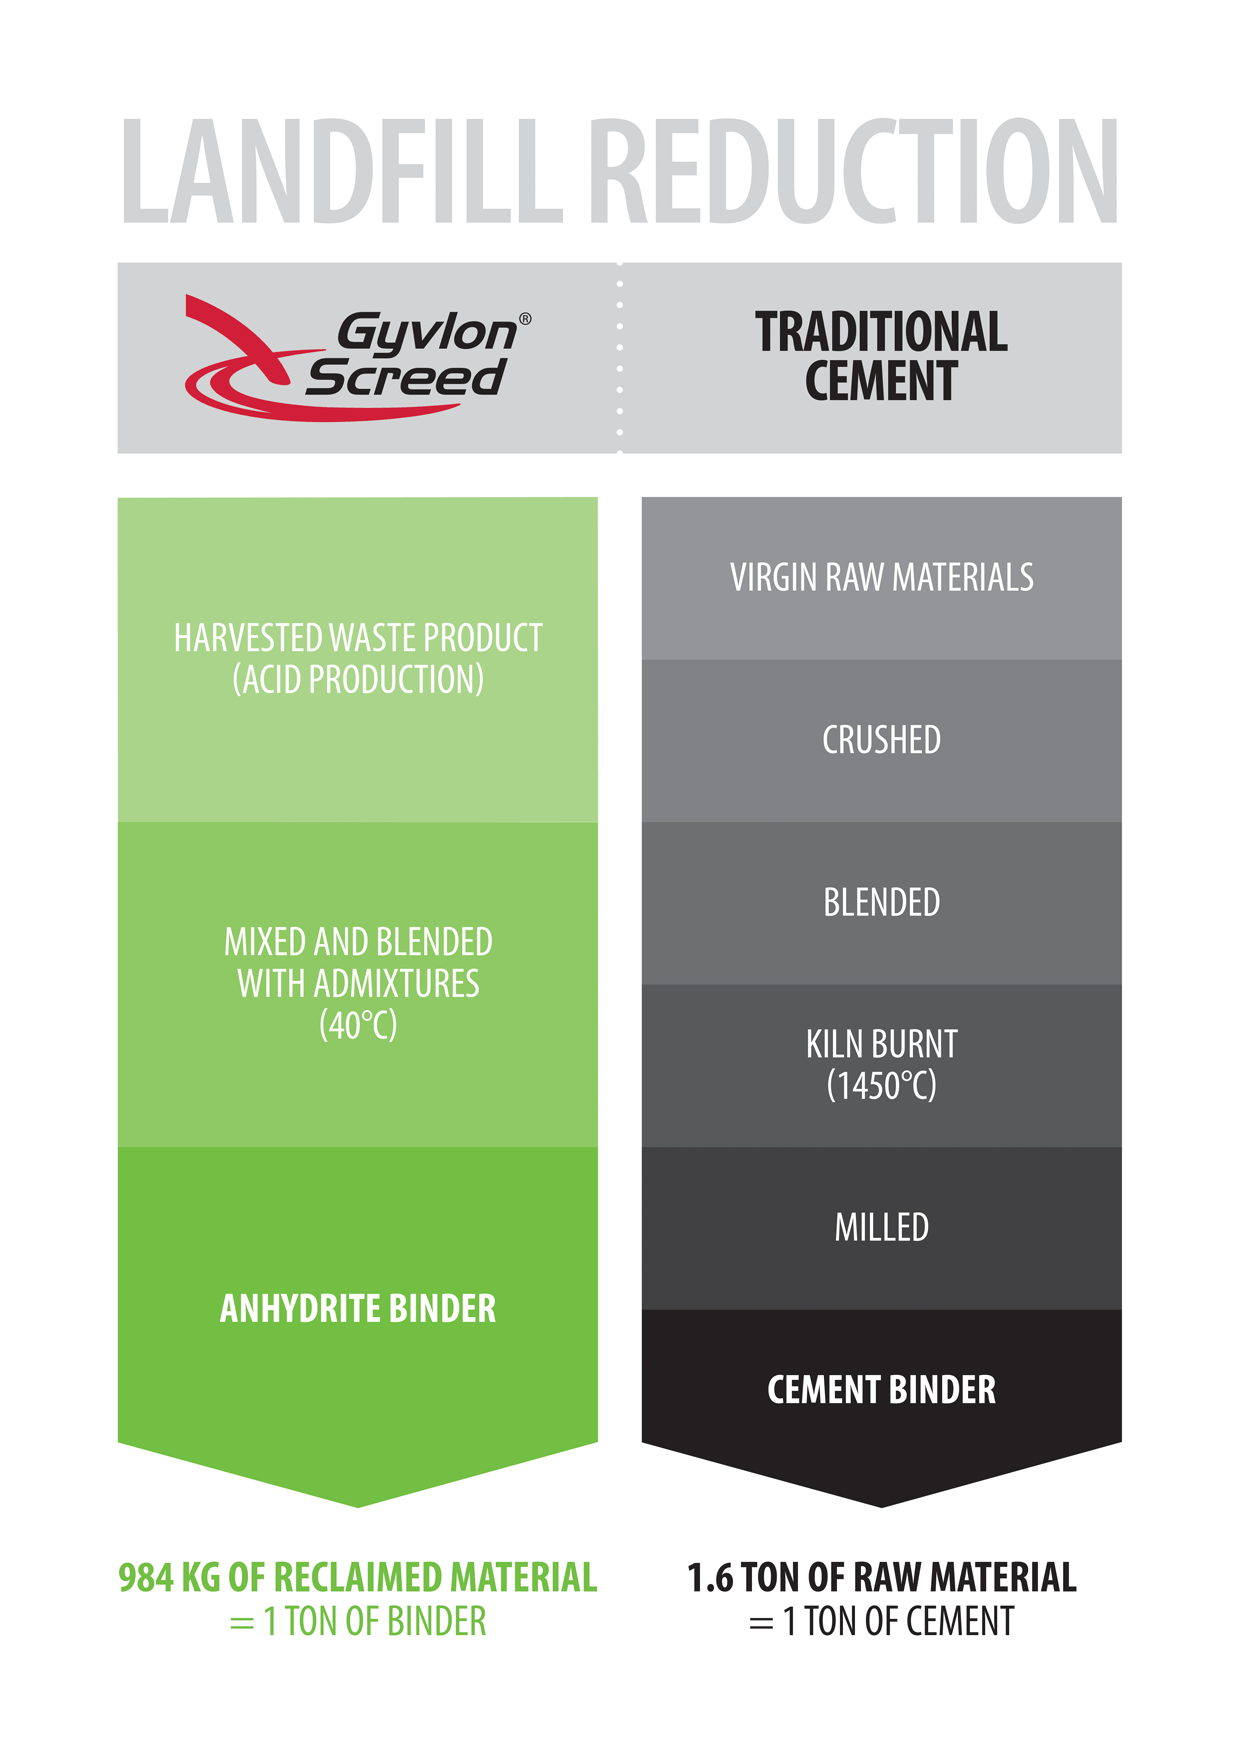 Gyvlon Screed vs Traditional cement